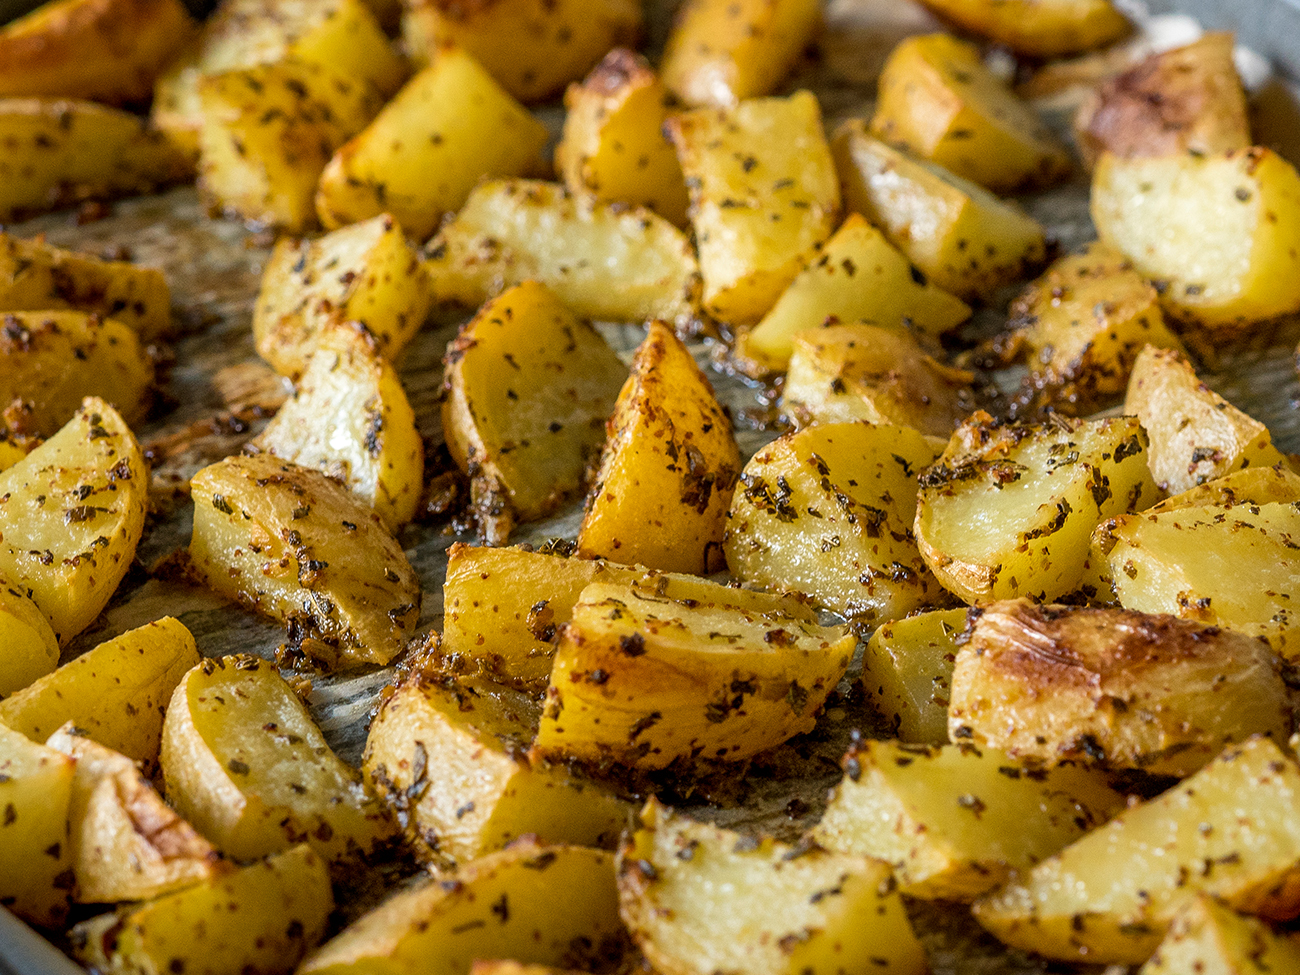 Greek Lemon Garlic Roasted Potatoes Horizontal 2